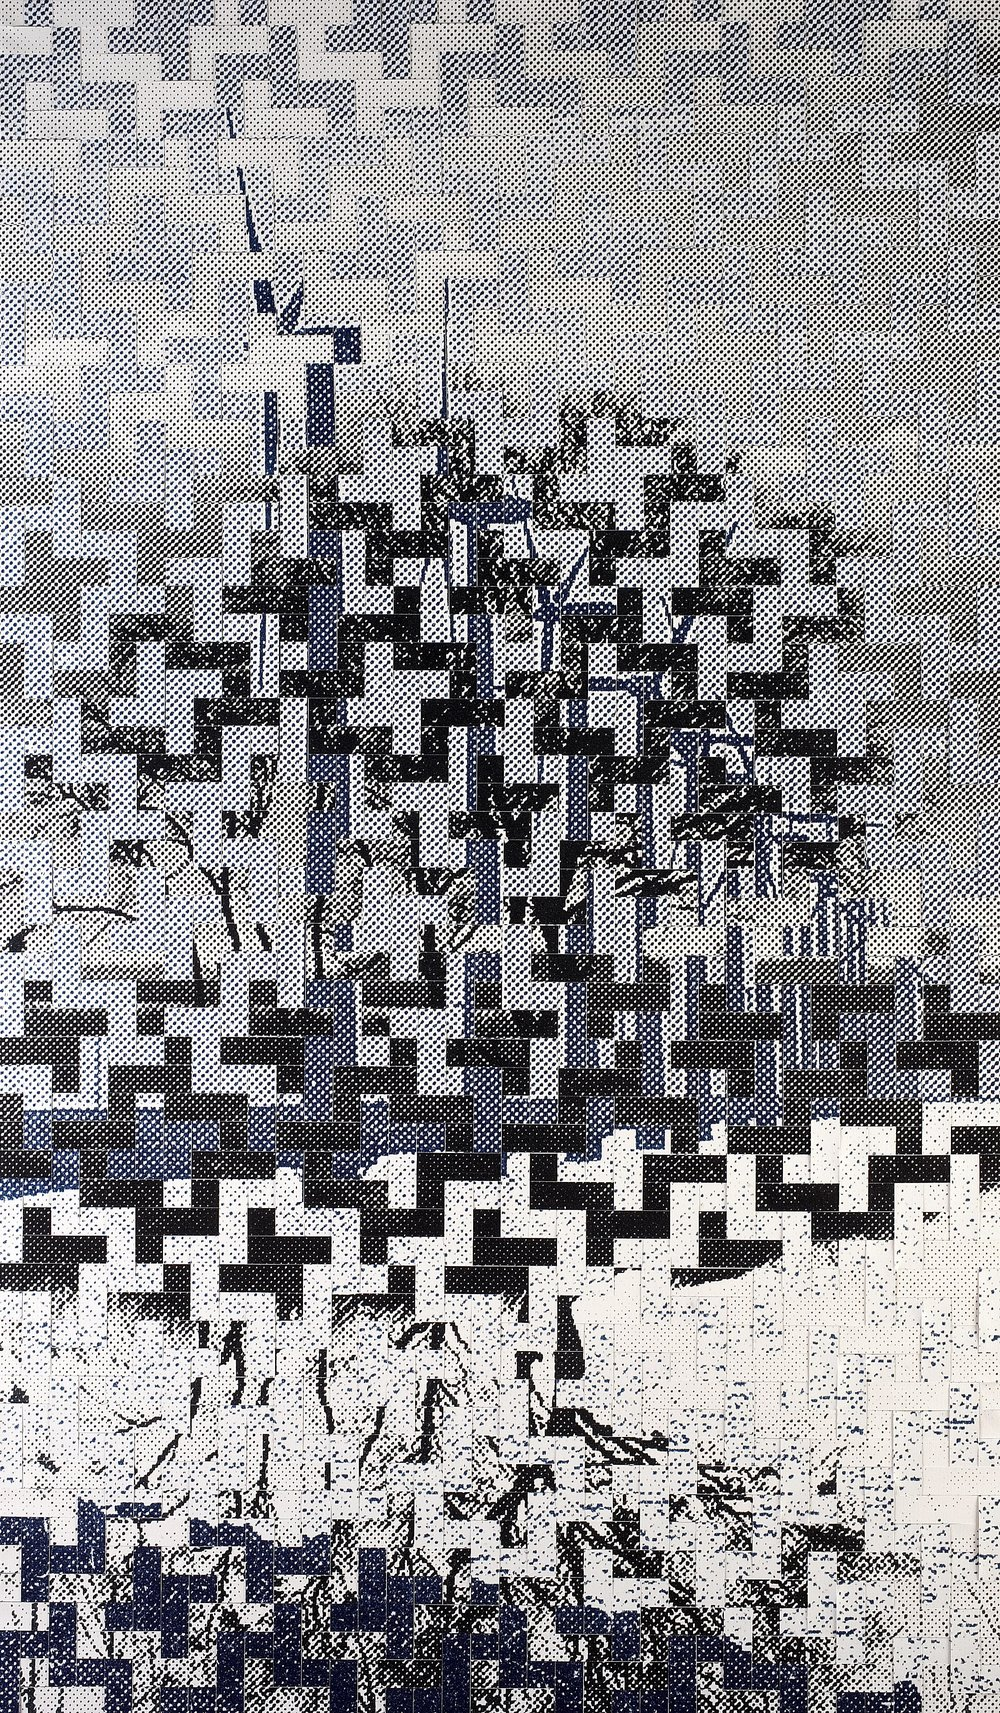 Dutch Landscapes: no. 1. Printed, woven canvas, 250 x 150 cm